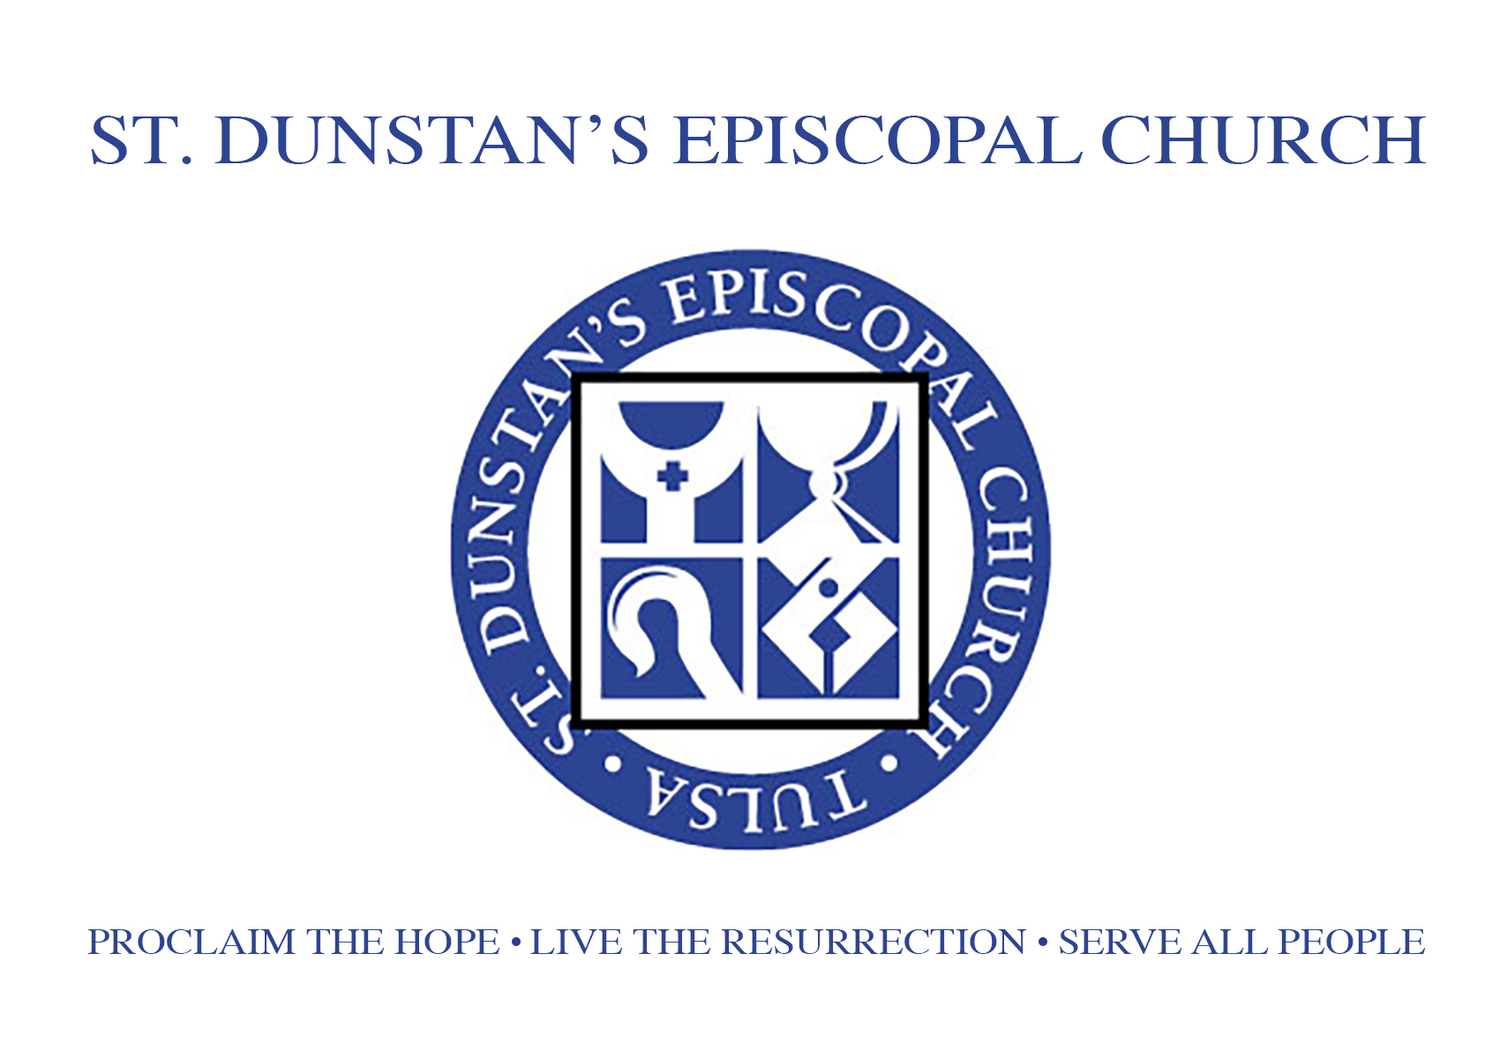 St Dunstan's Episcopal Church